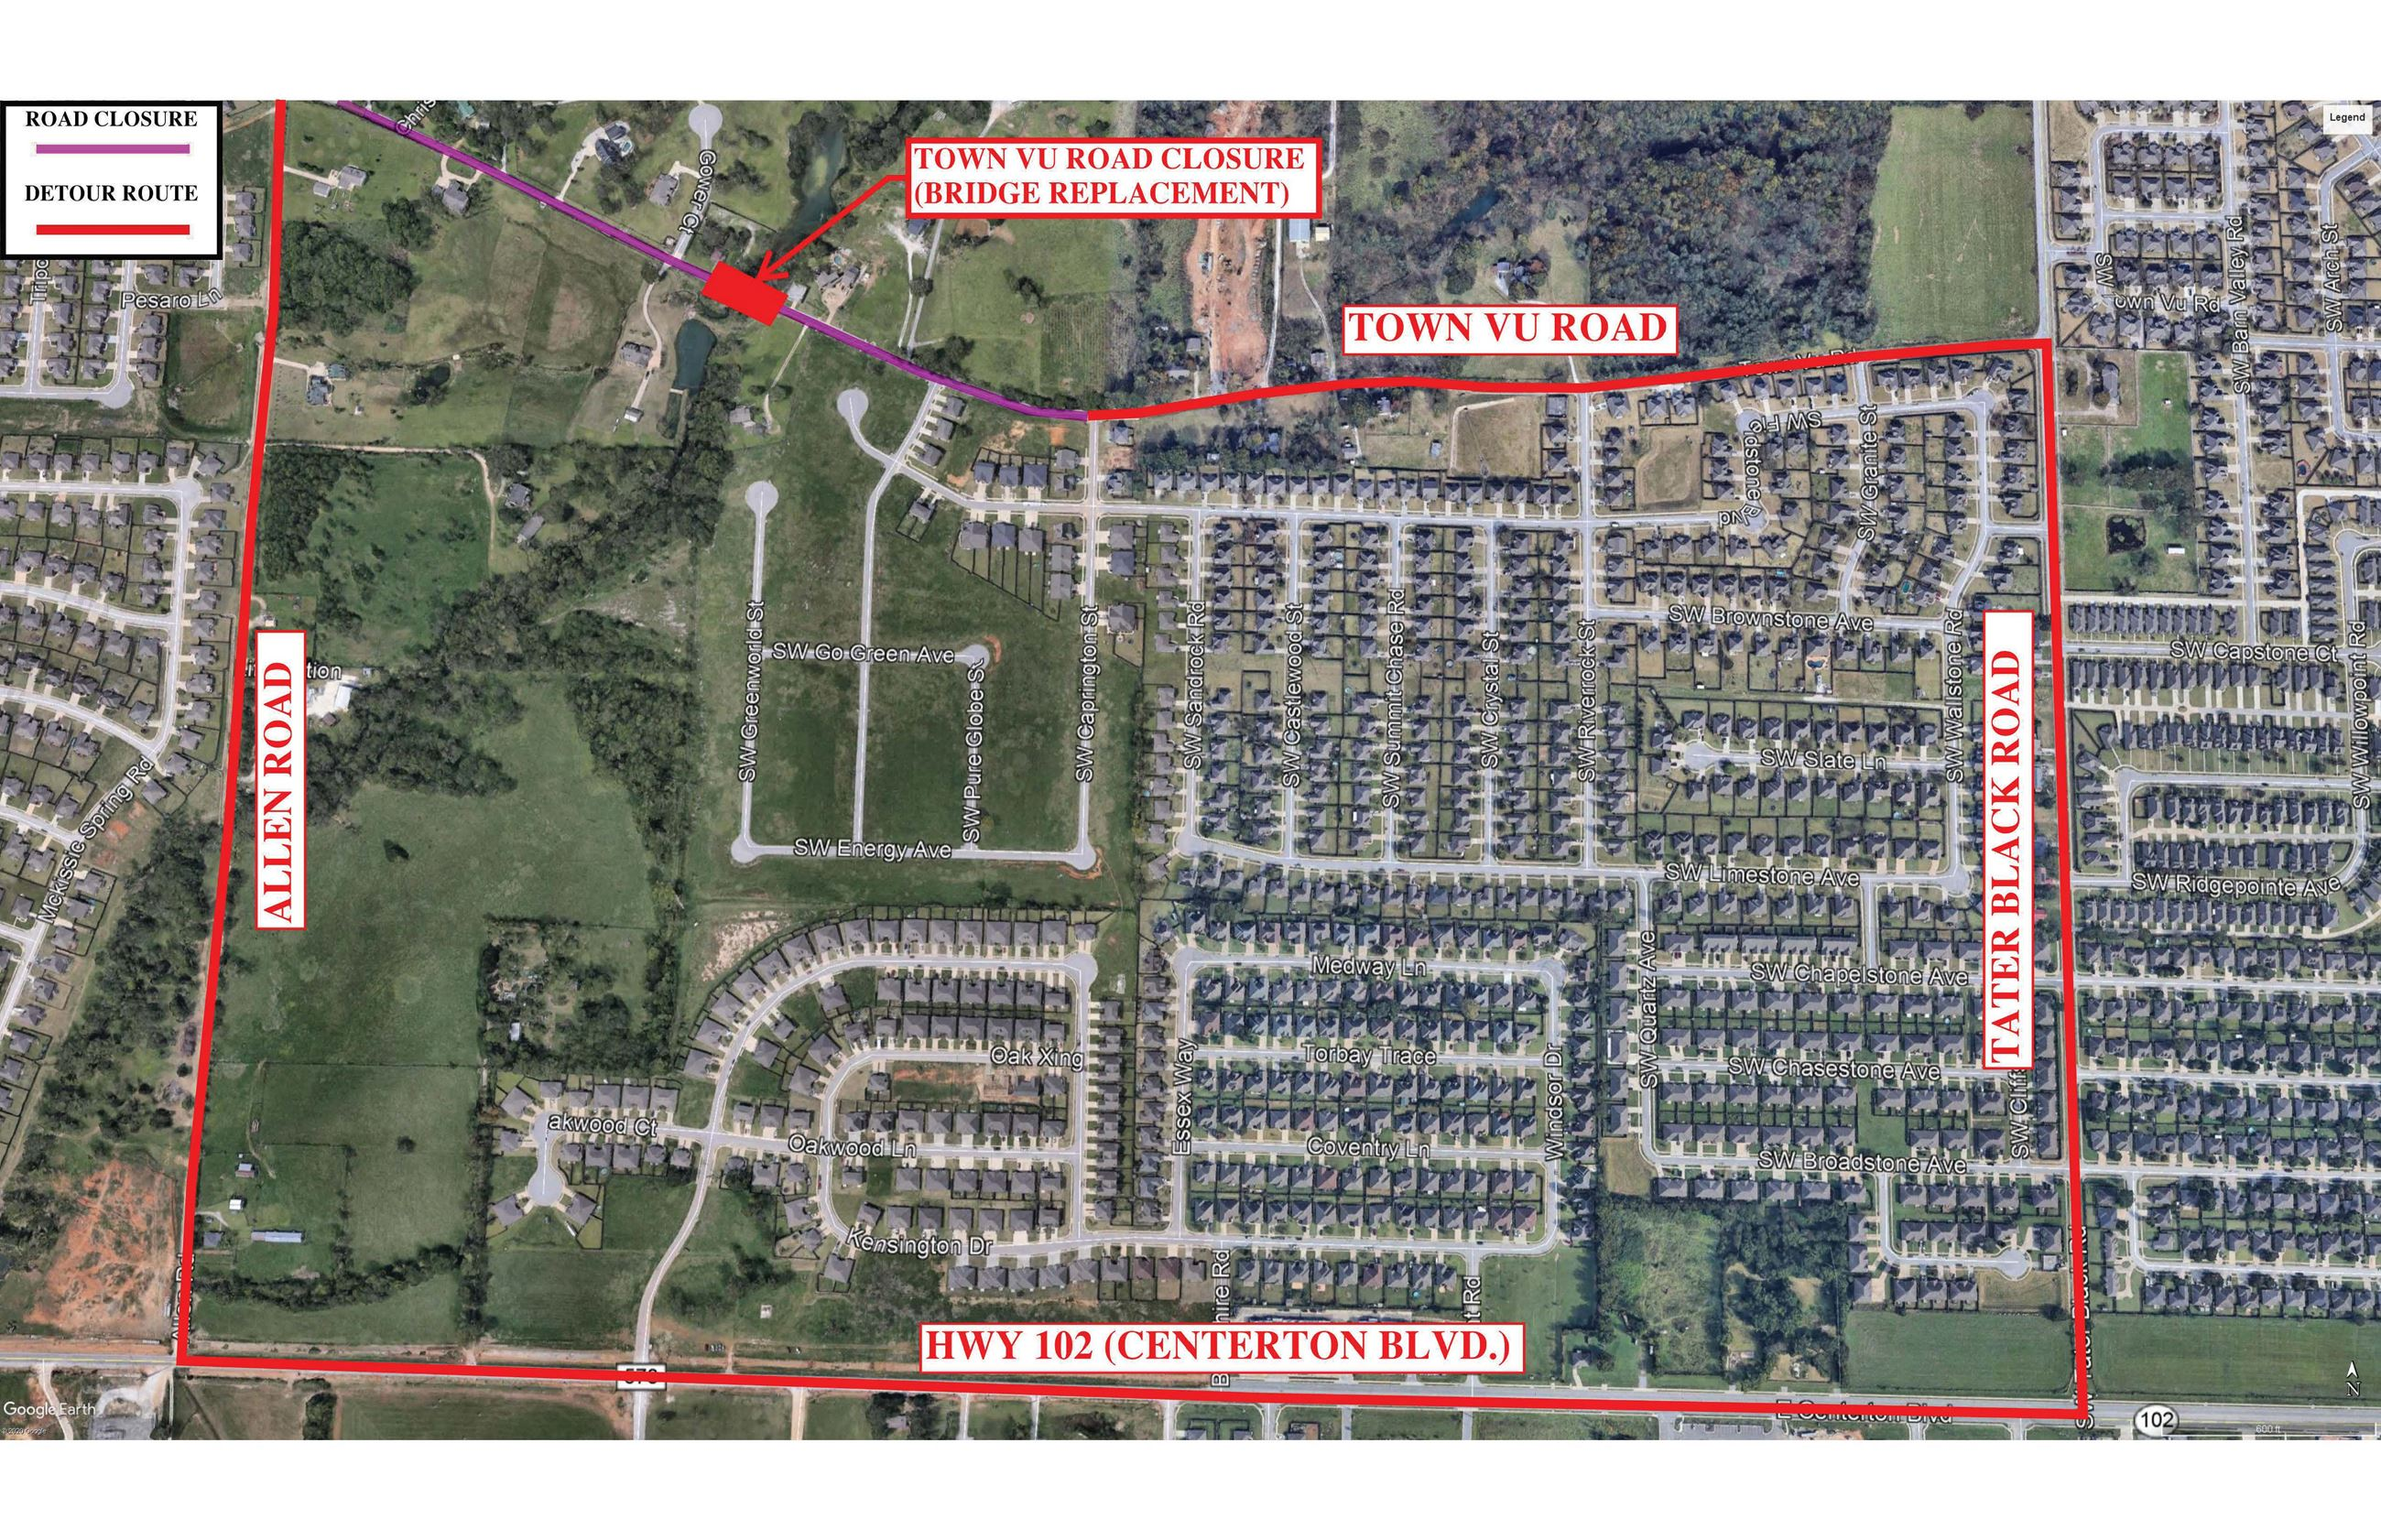 08-17 thru 12-14 - TOWN VU ROAD - FULL CLOSURE_Page_1